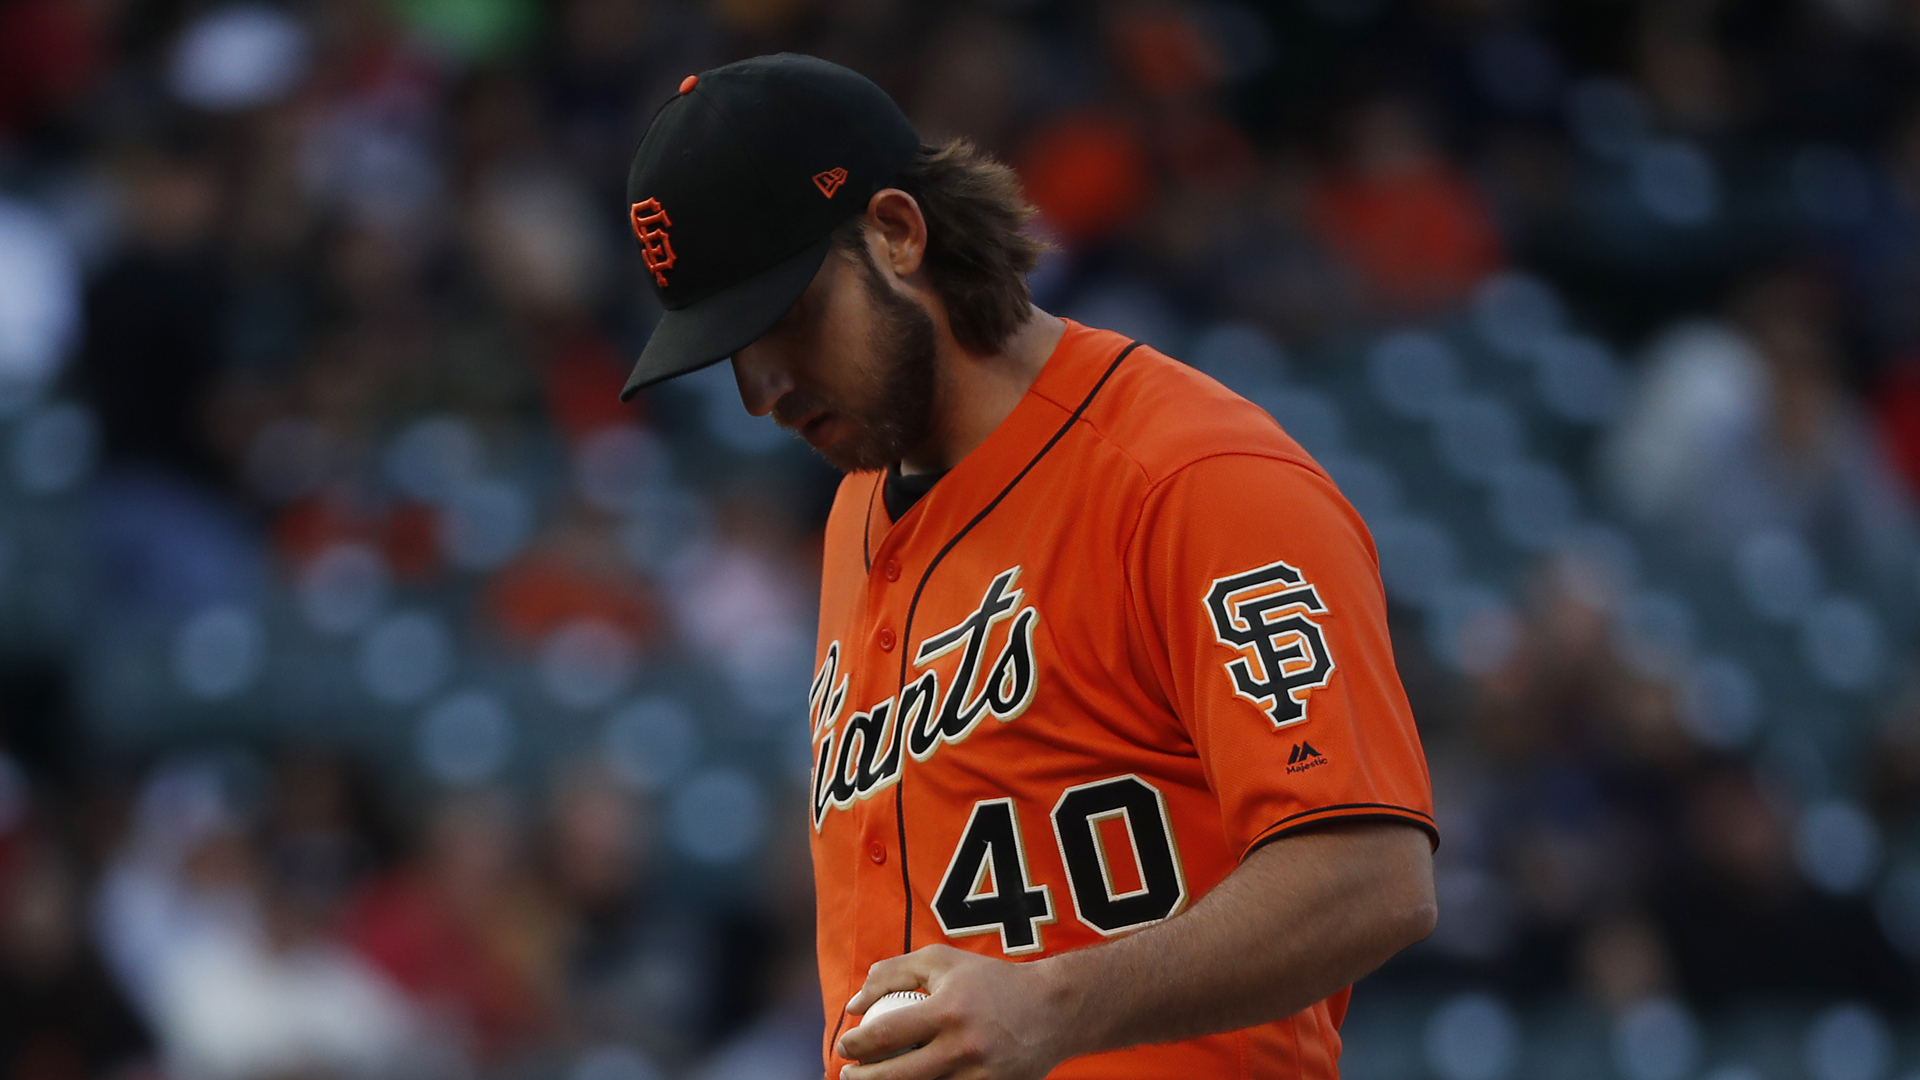 Giants lose Bumgarner, Samardzija to injuries days before season opener